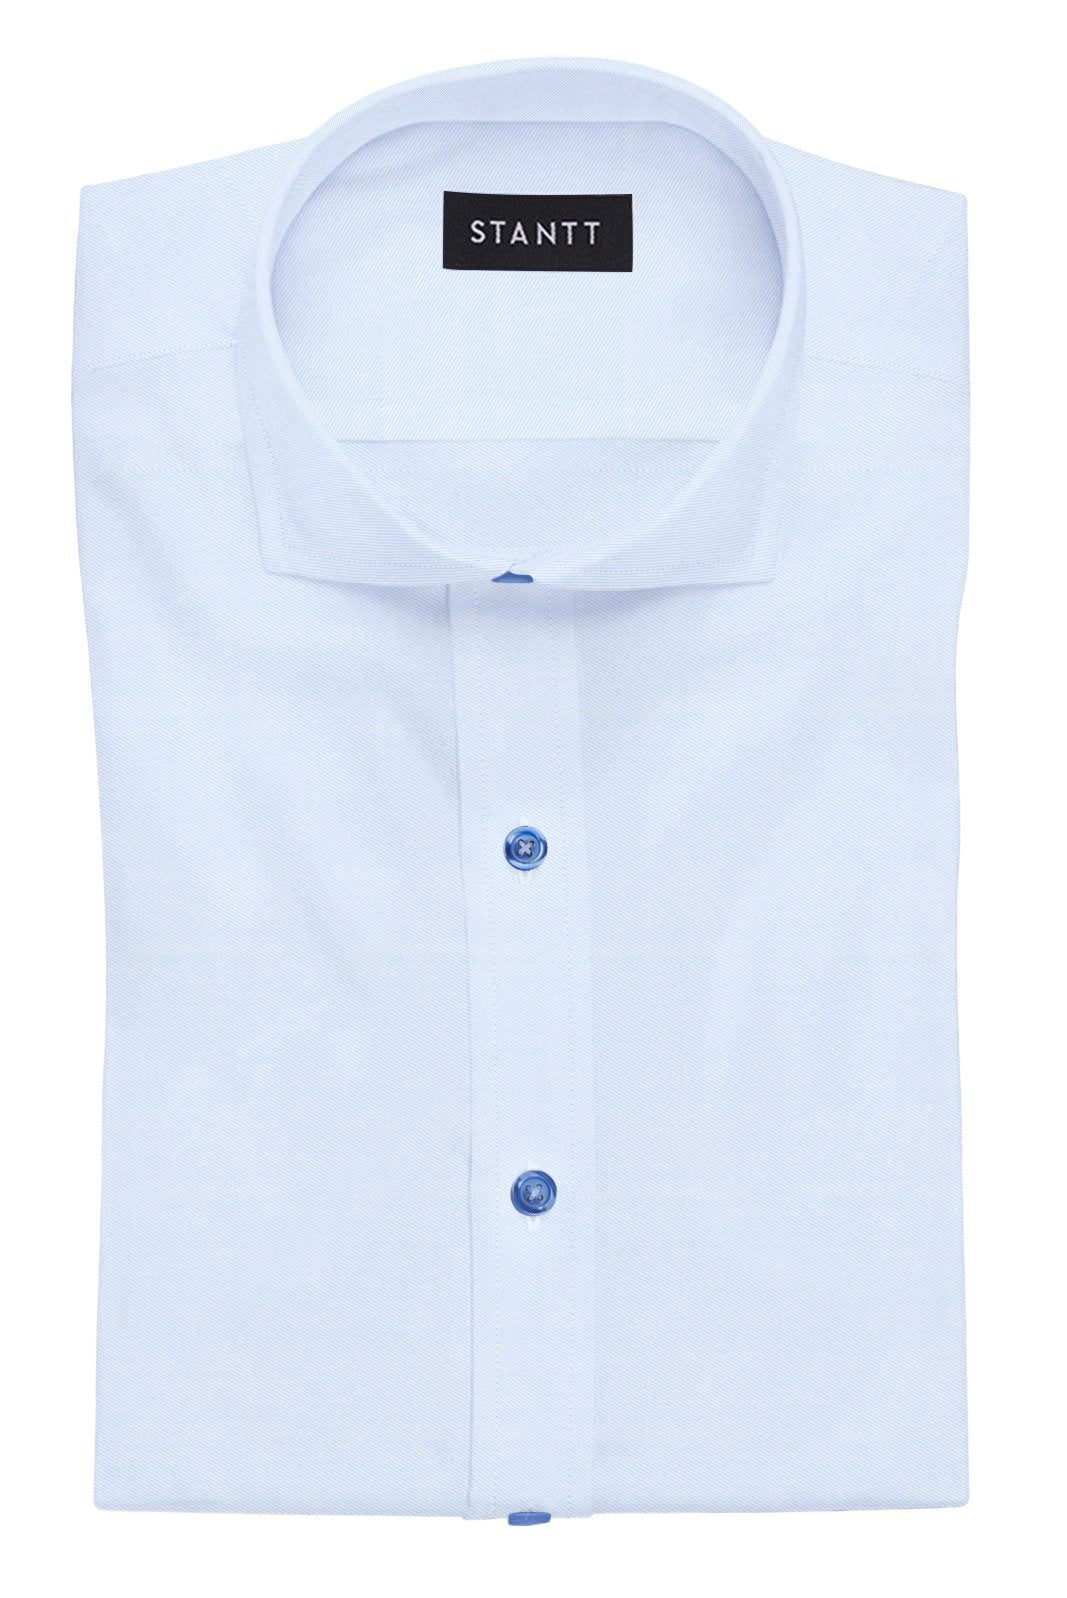 Navy Button on Wrinkle-Resistant Light Blue Twill: Cutaway Collar, French Cuff